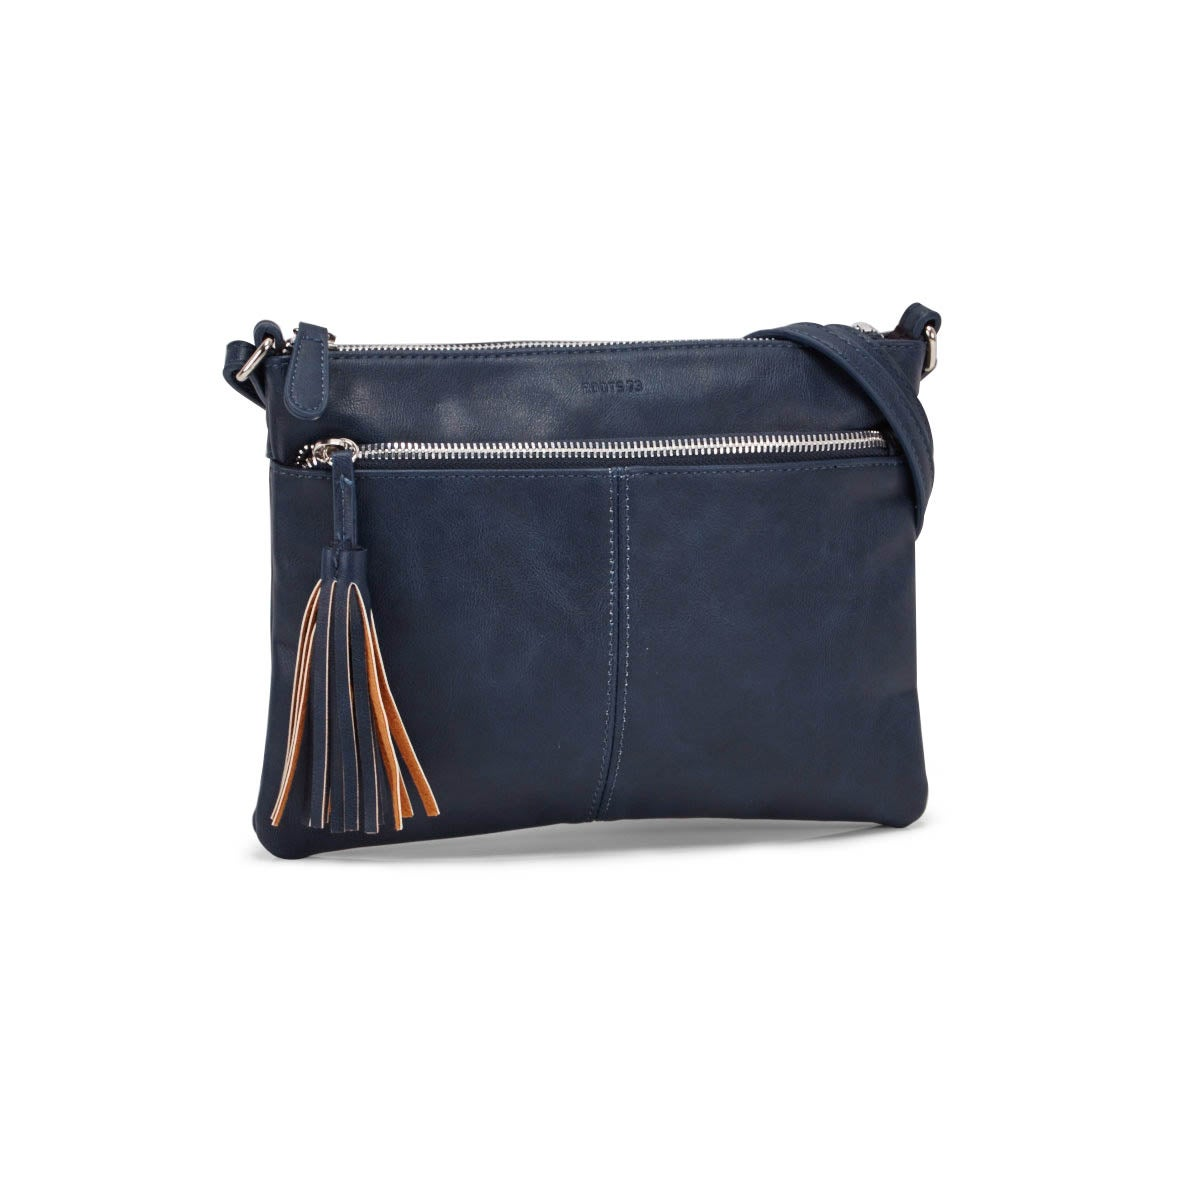 Lds Roots73 denim tassel crossbody